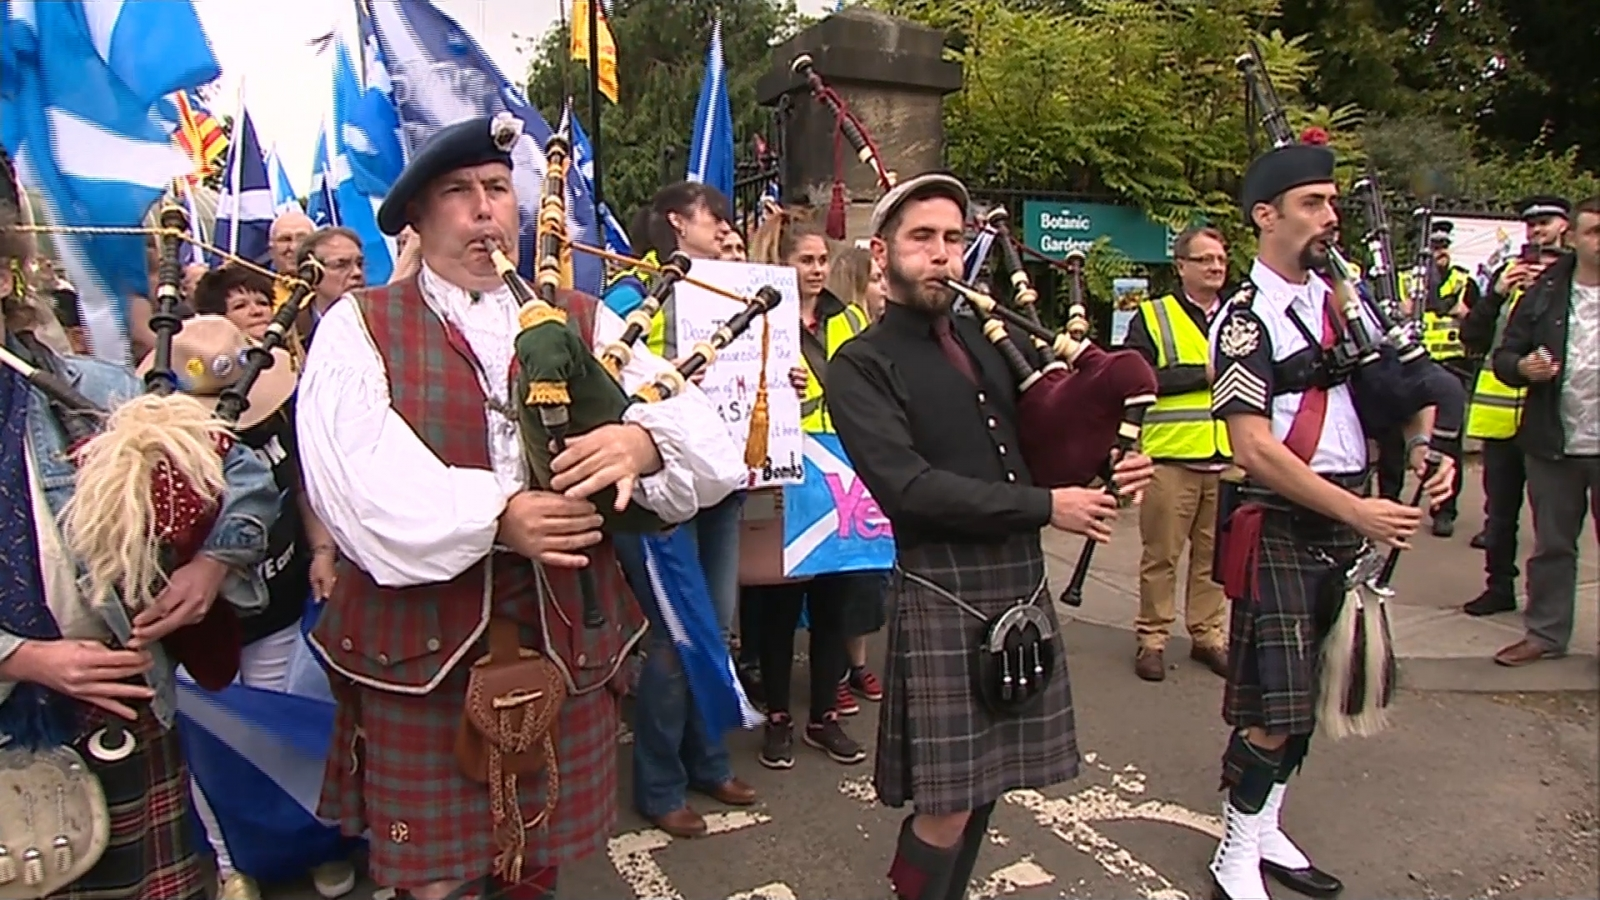 Thousands march in Glasgow for pro-independence rally after Brexit vote